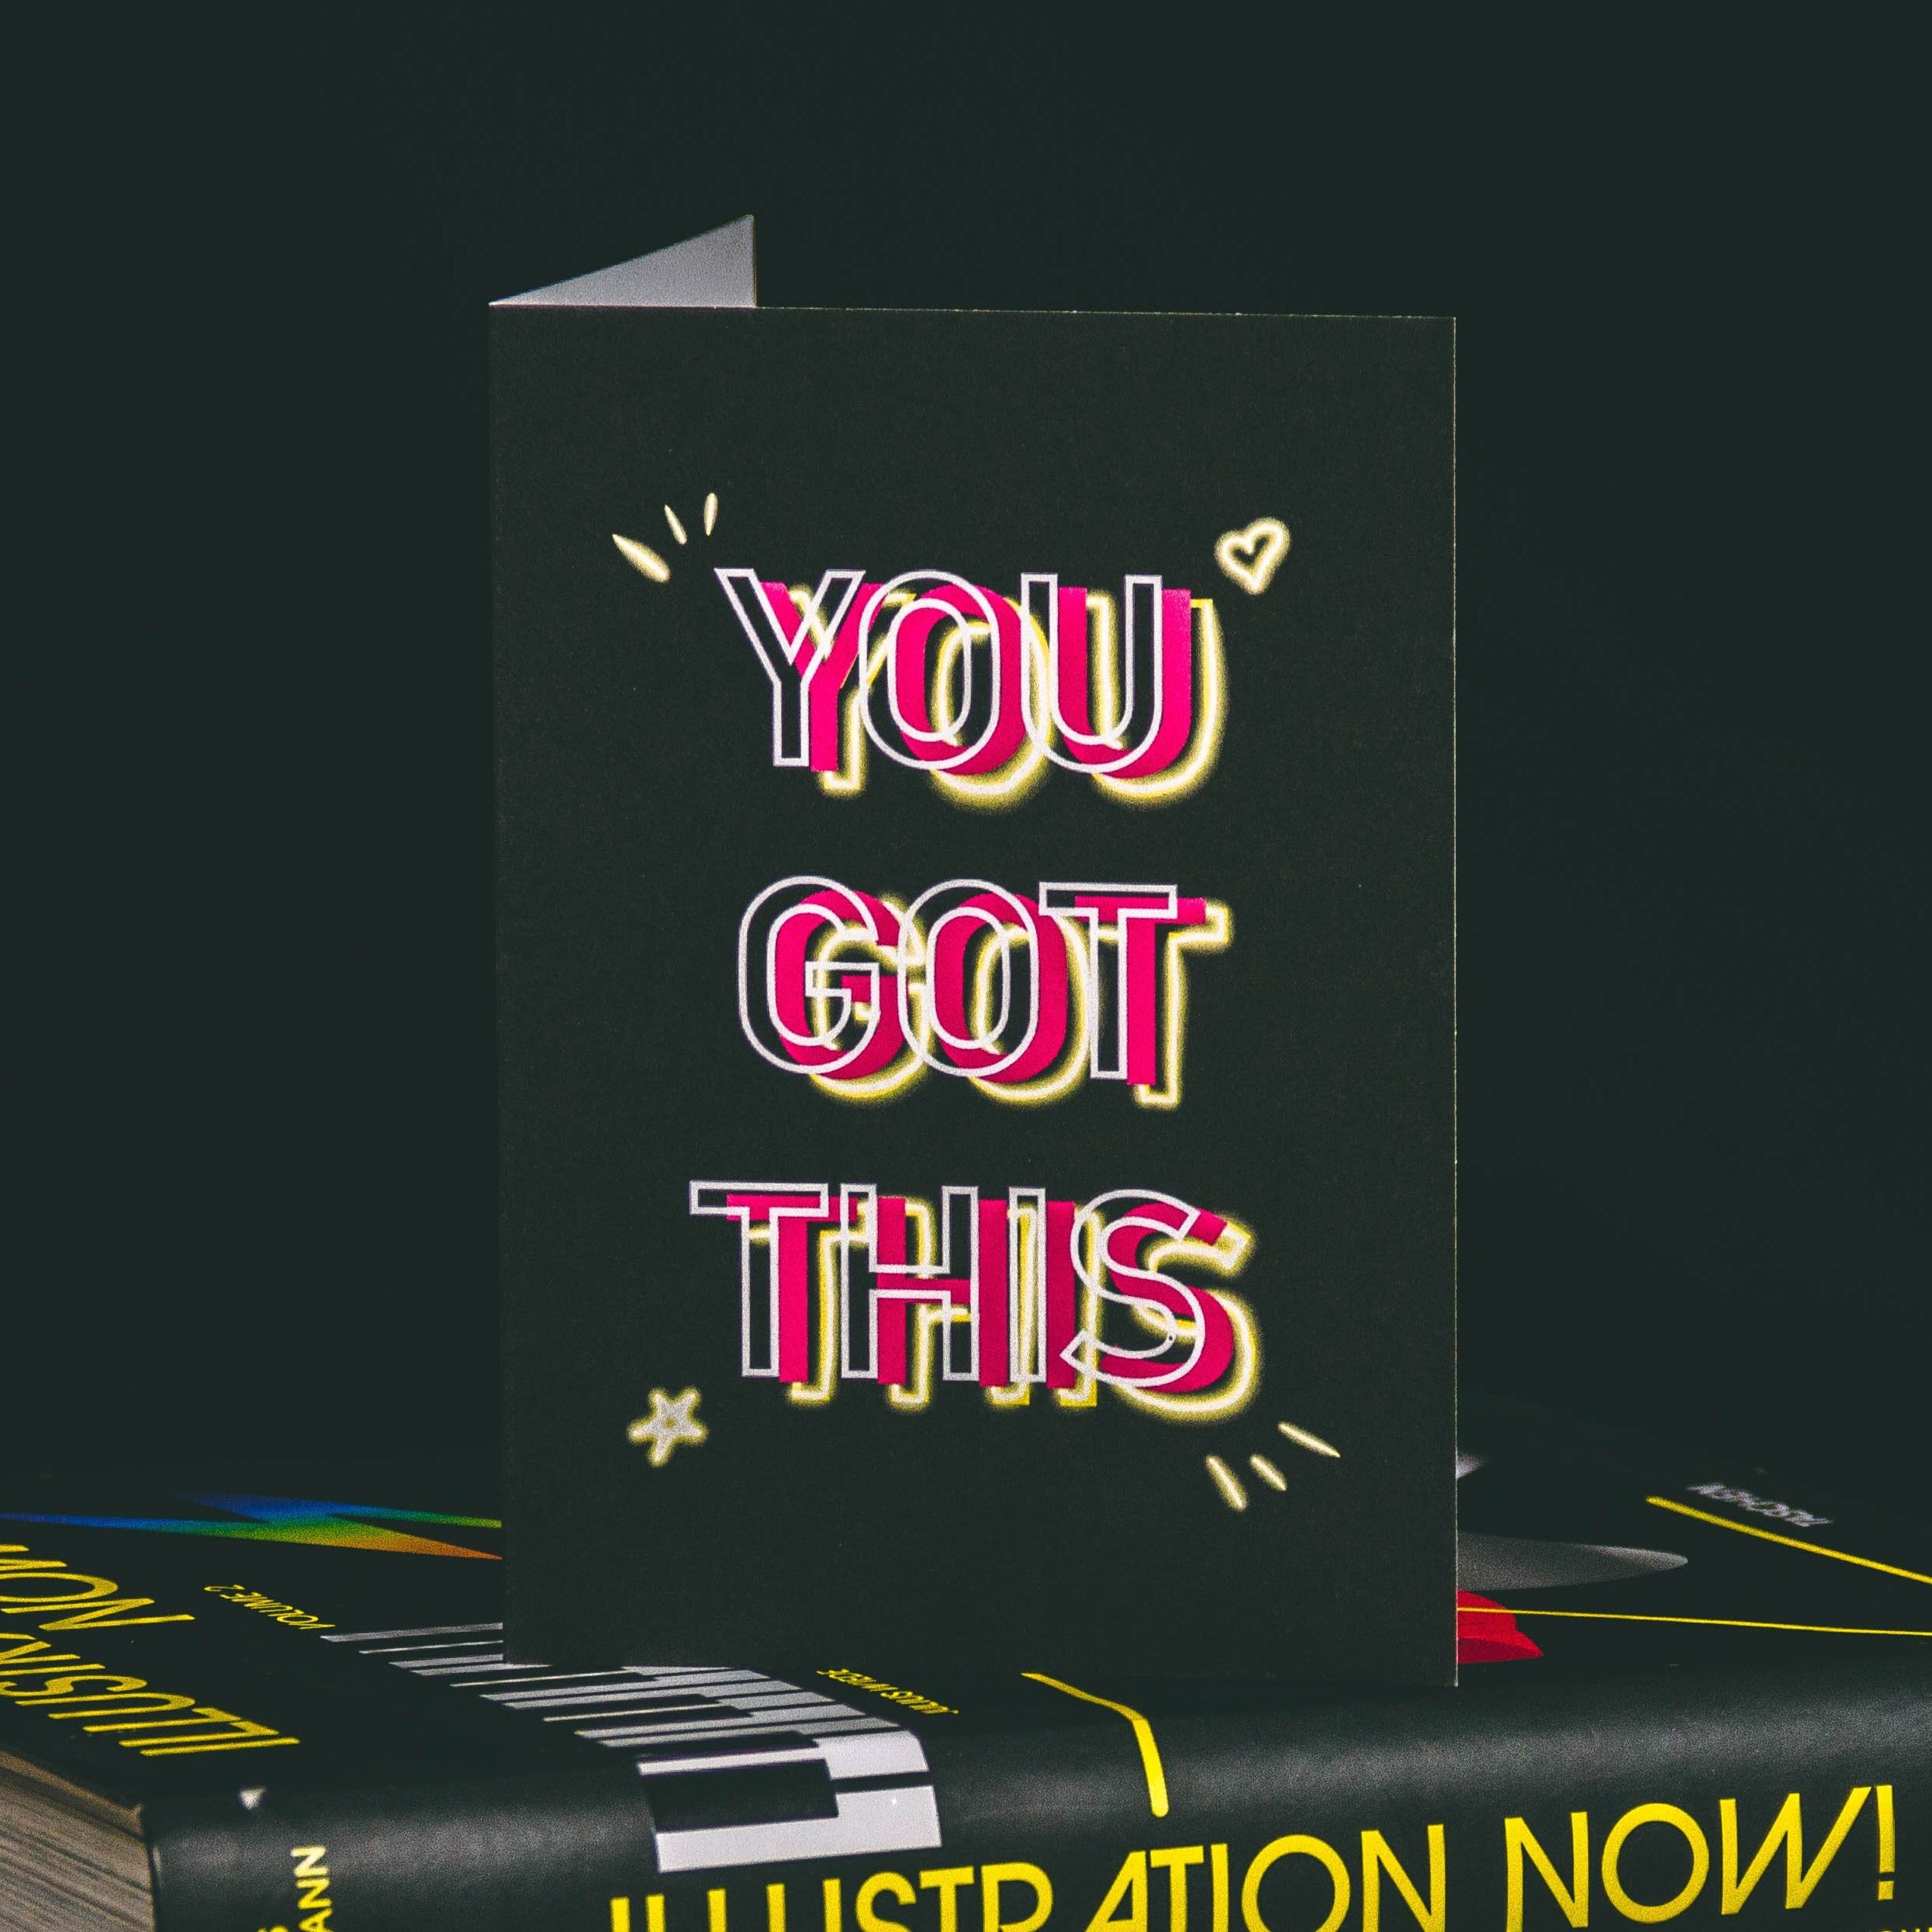 A6 Black Greetings Card With Pink Yellow and White You Got This Neon slogan design by wayward